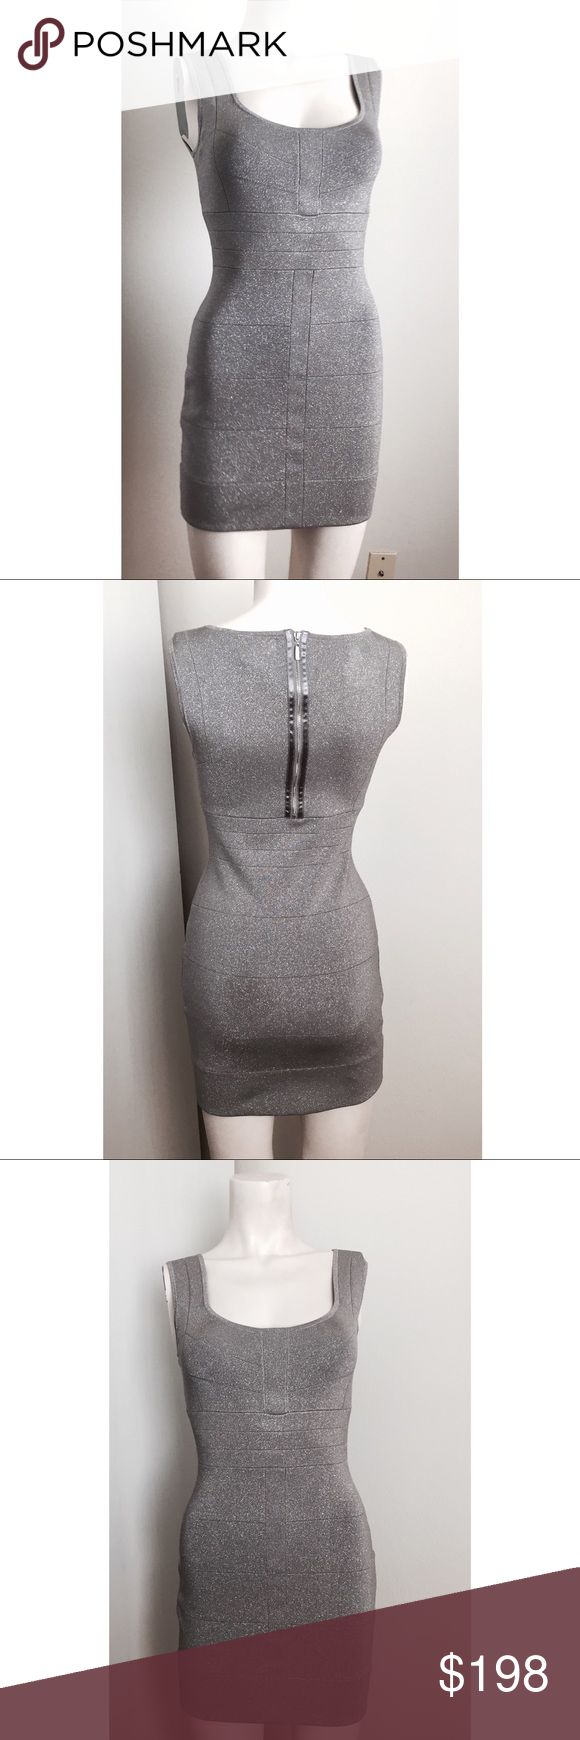 🎬 Laundry by Shelli Segal silver bodycon dress Gorgeous silver bodycon dress by Laundry by Shelli Segal. Was used in the TV show Devious Maids. Purchased from the ABC costume department. Has the ABC Asset Sku still inside the garment. Zipper in back. #9021705 Laundry By Shelli Segal Dresses